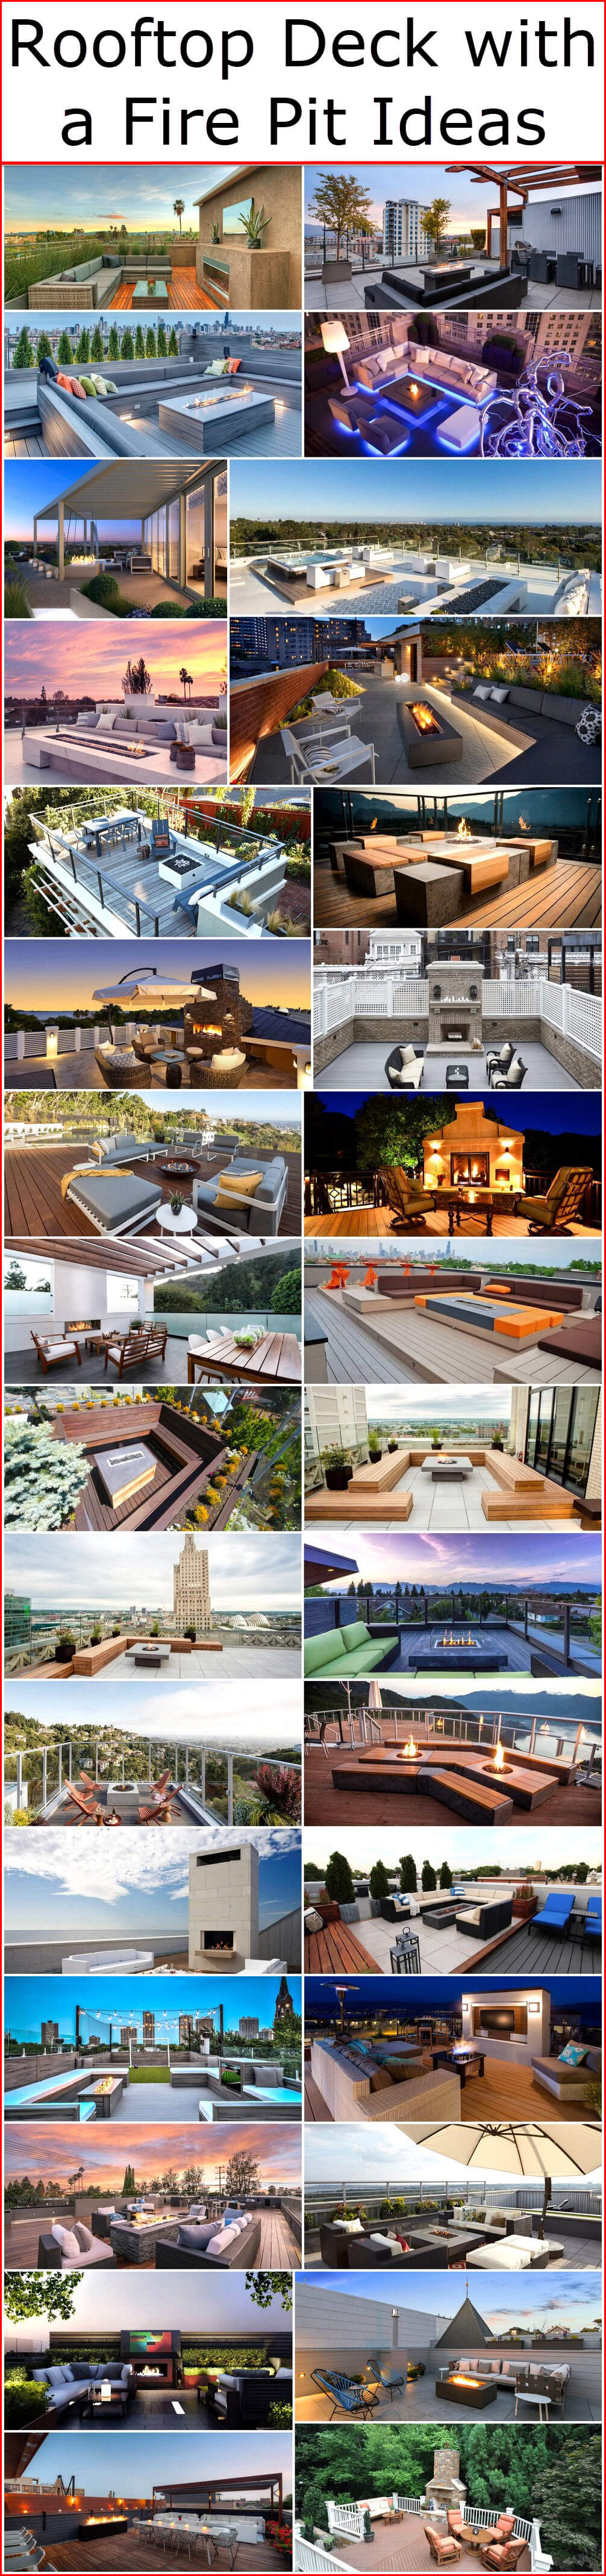 Rooftop Deck with a Fire Pit Ideas